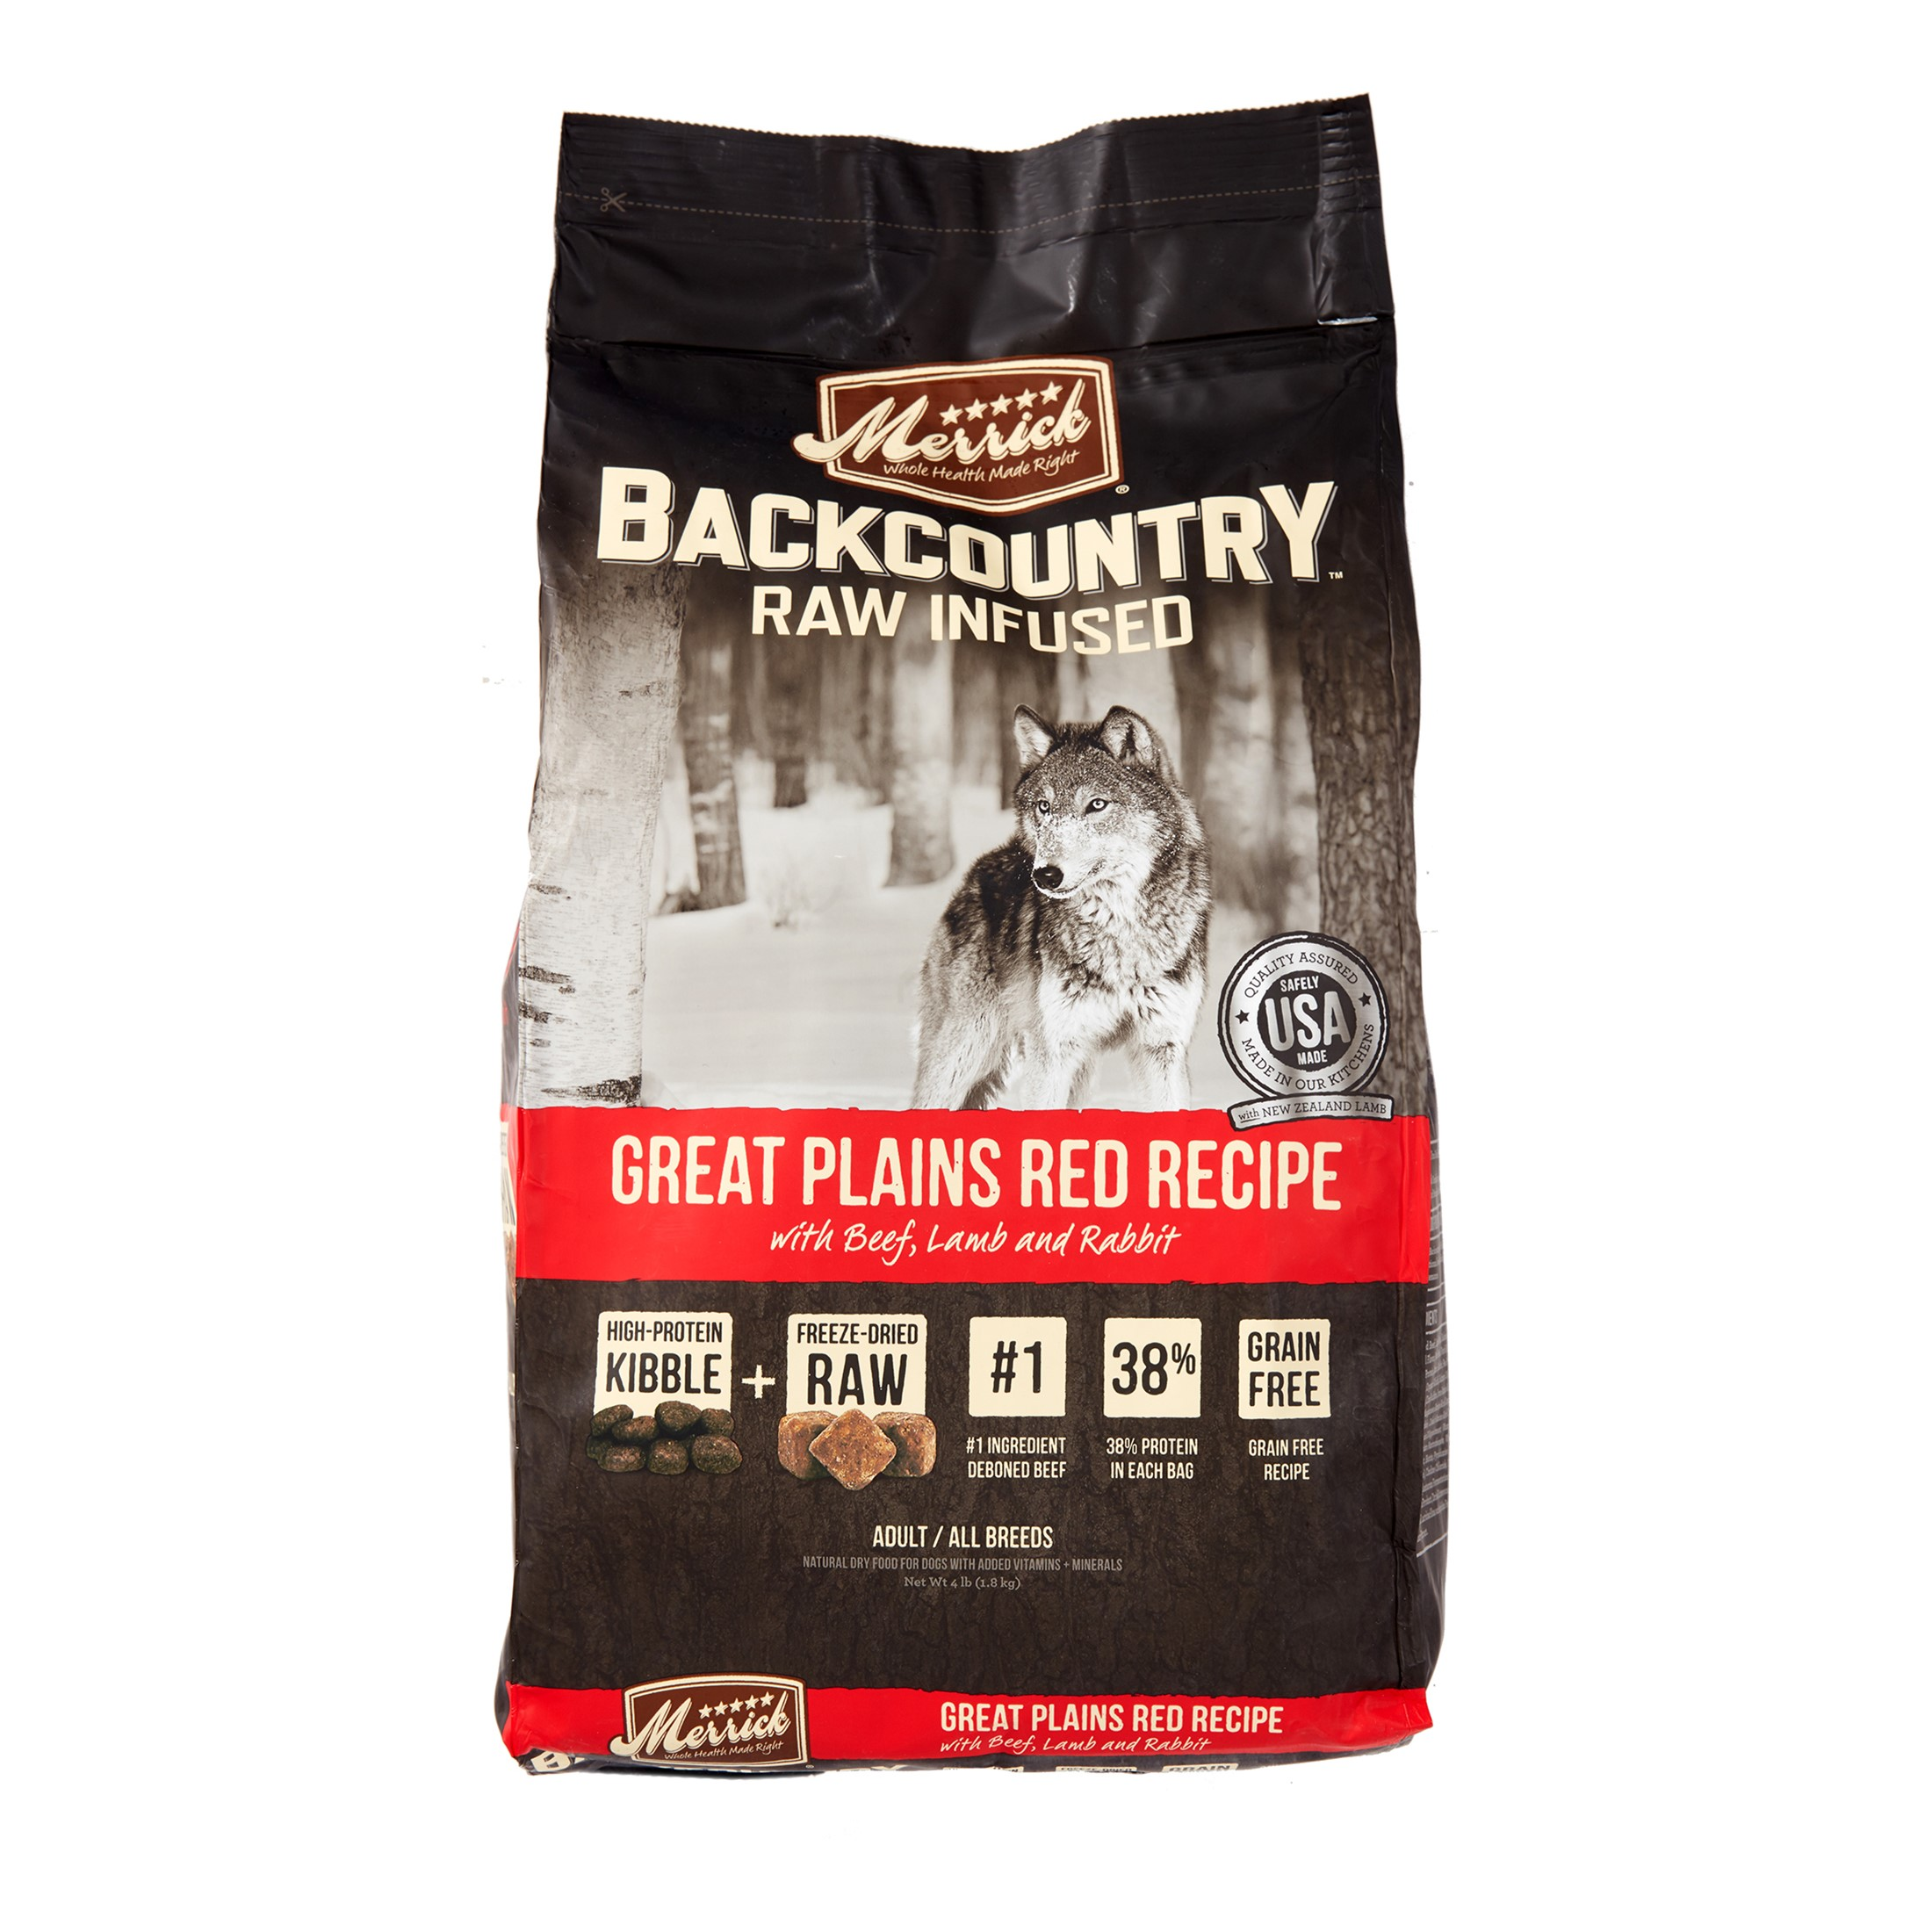 Merrick Backcountry Grain-Free Raw Infused Great Plains Red Recipe Dry Dog Food, 4 lb